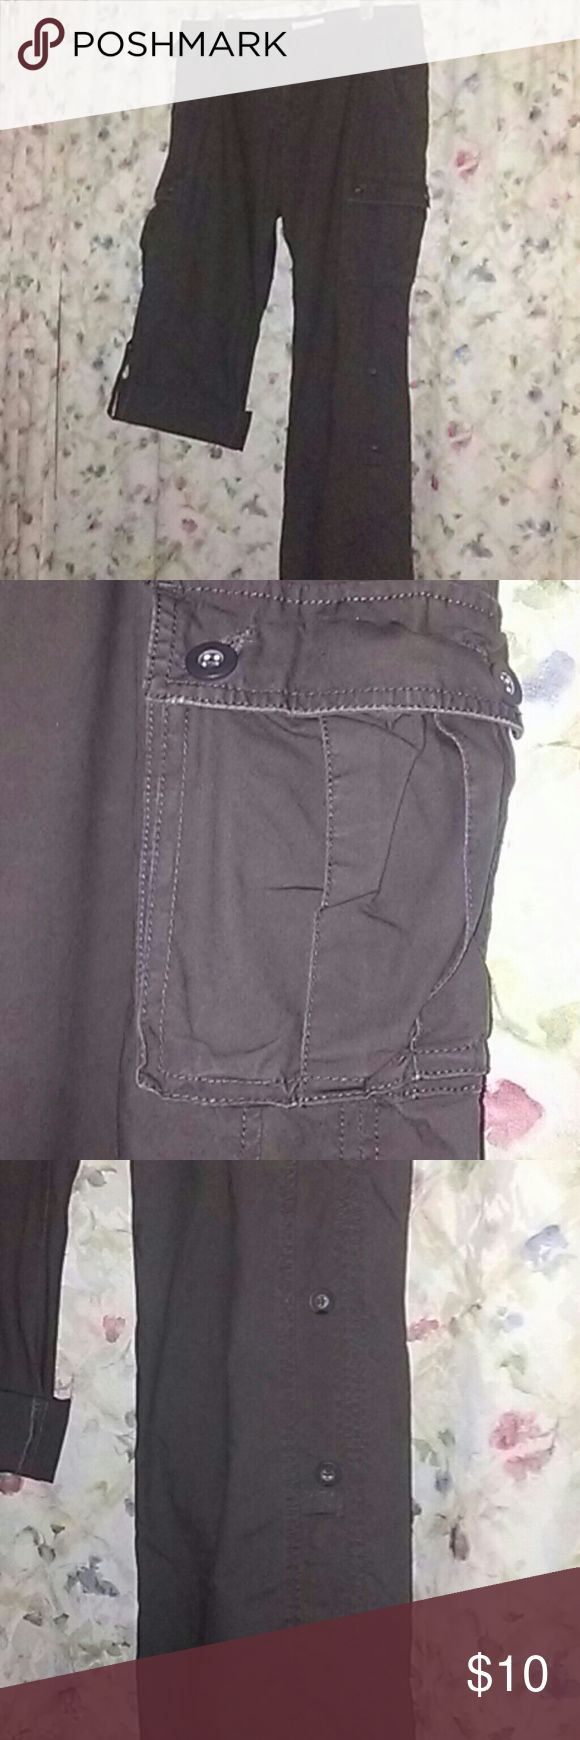 Old Navy Cargo Pants Authentic Old Navy cargo pants that convert into capris 6 pockets 100% cotton Old Navy Pants